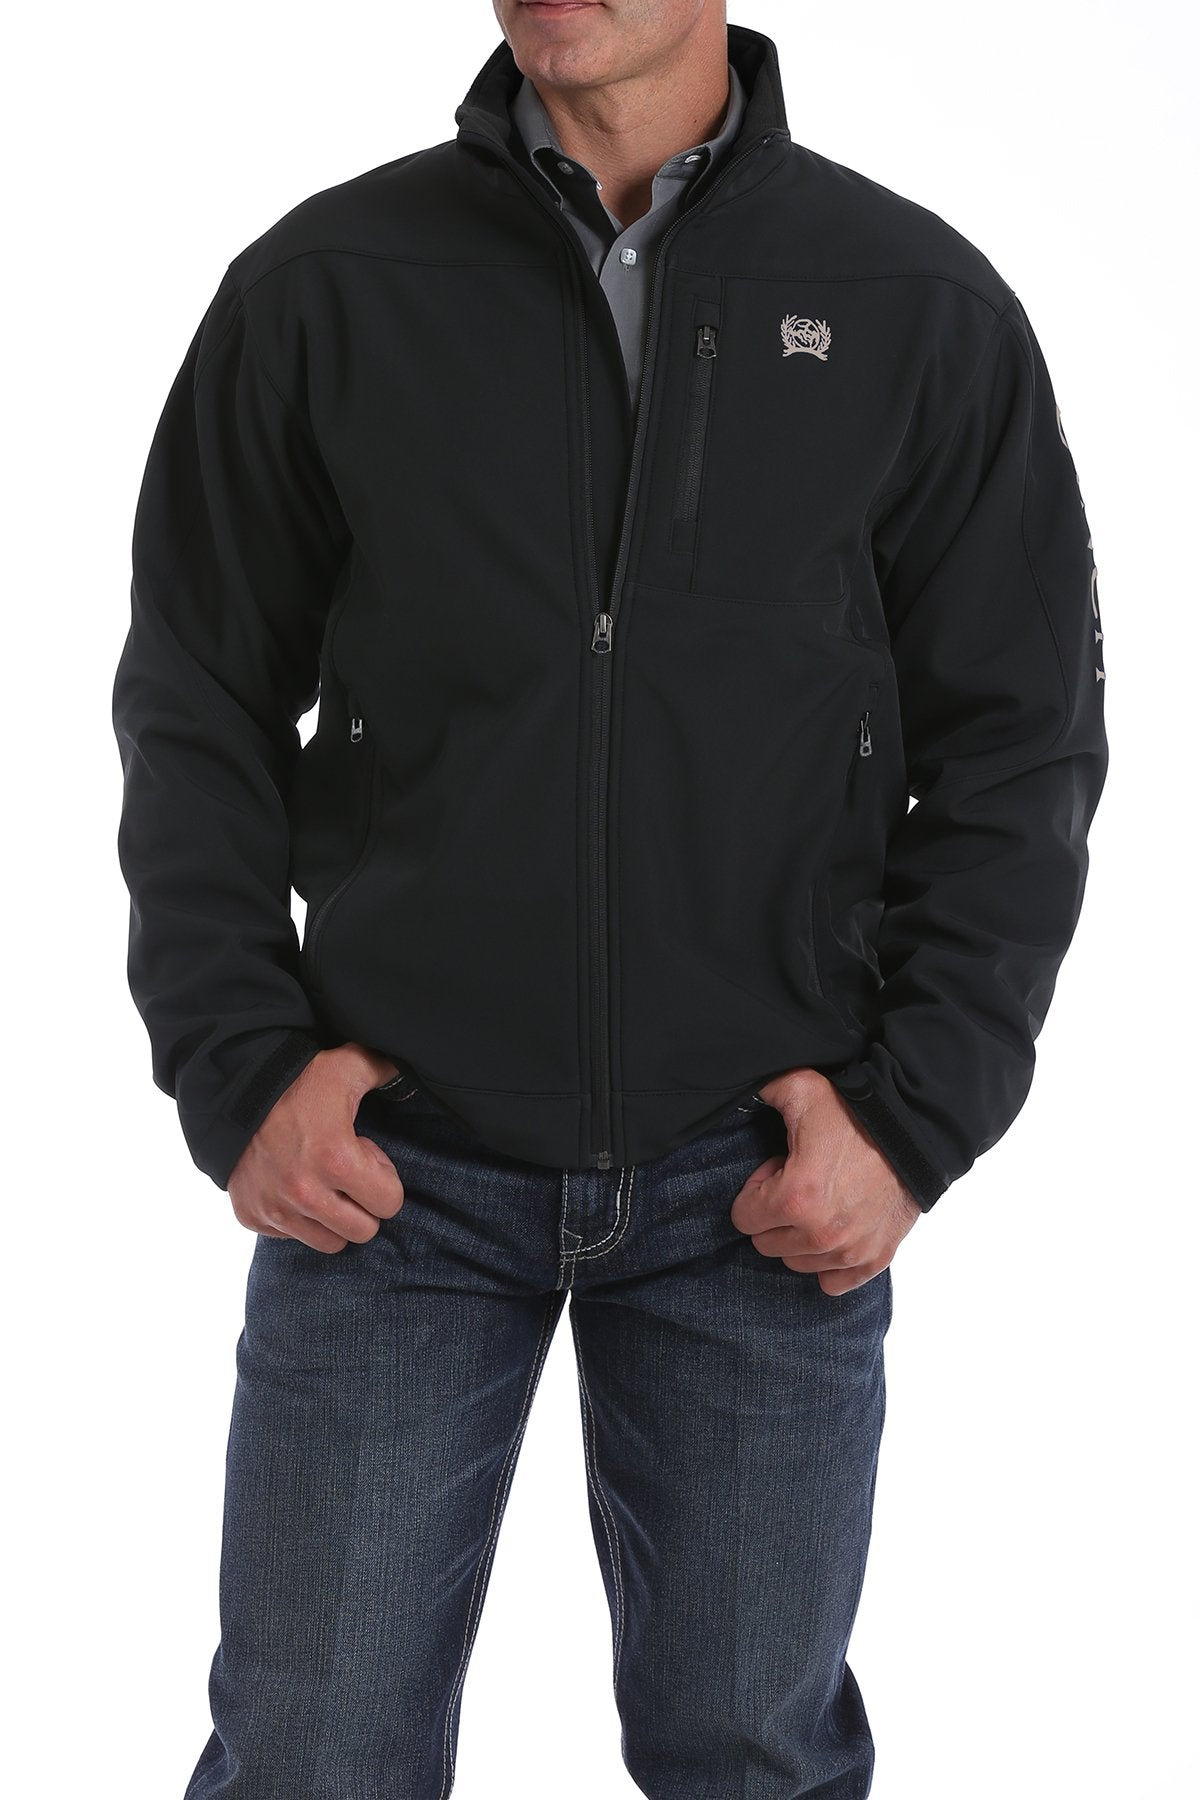 Cinch Black and Gold Bonded Men's Jacket